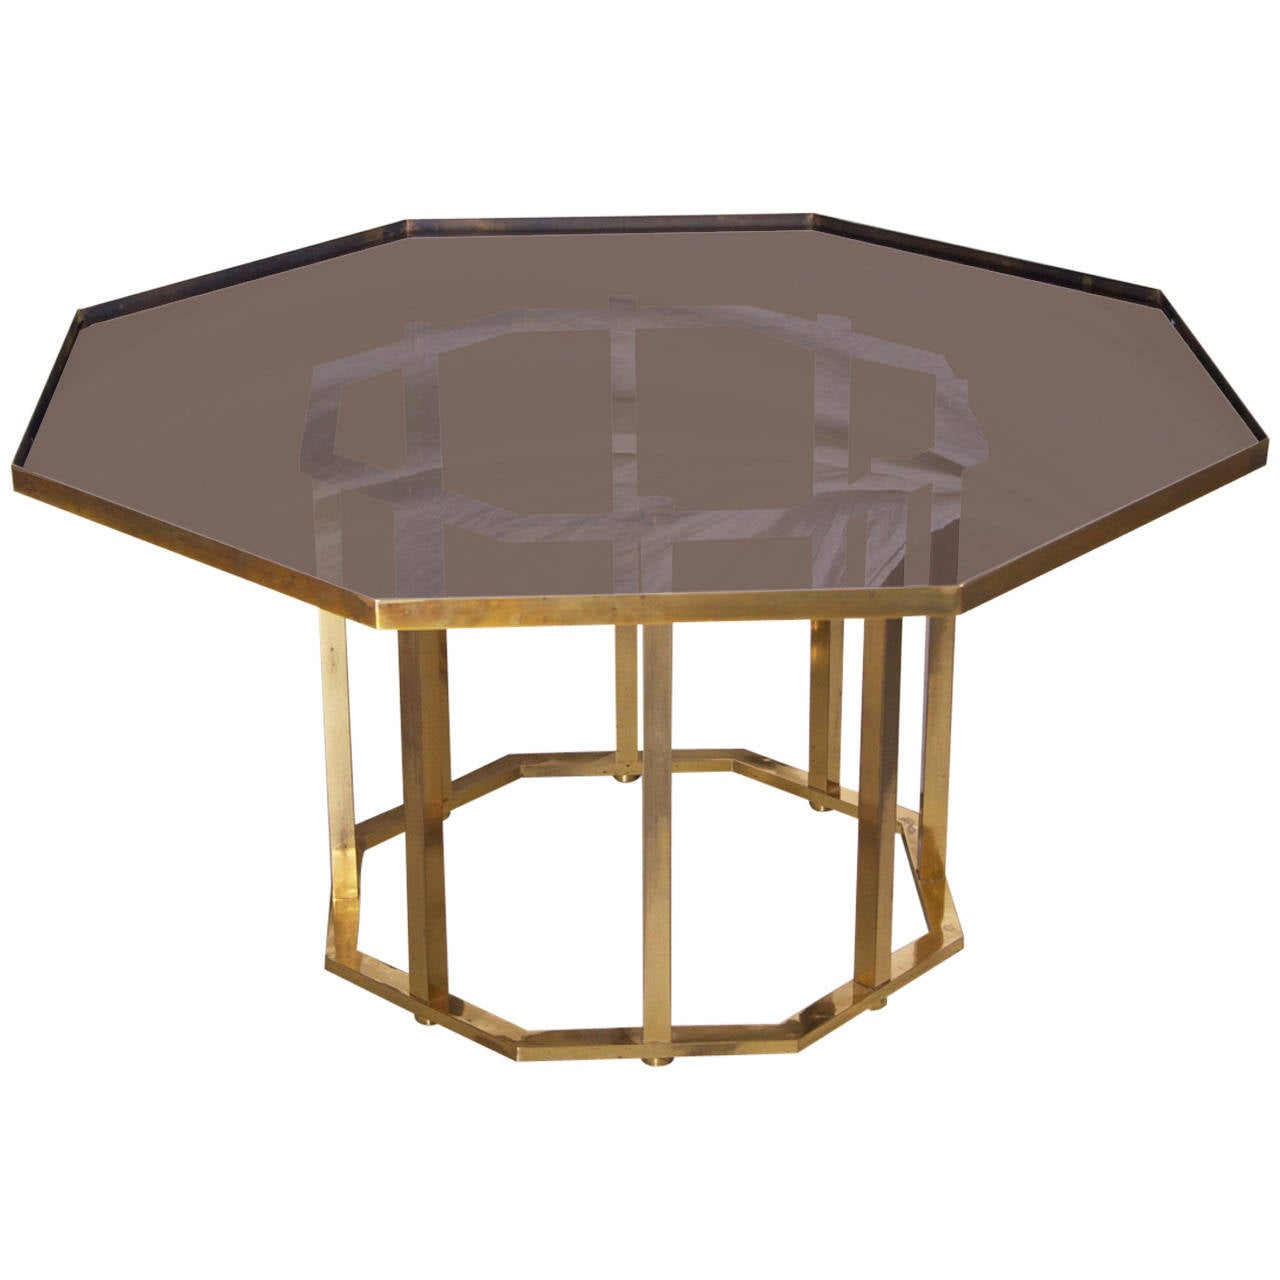 Huge maison jansen octagonal coffee table in massive brass for Octagon coffee table